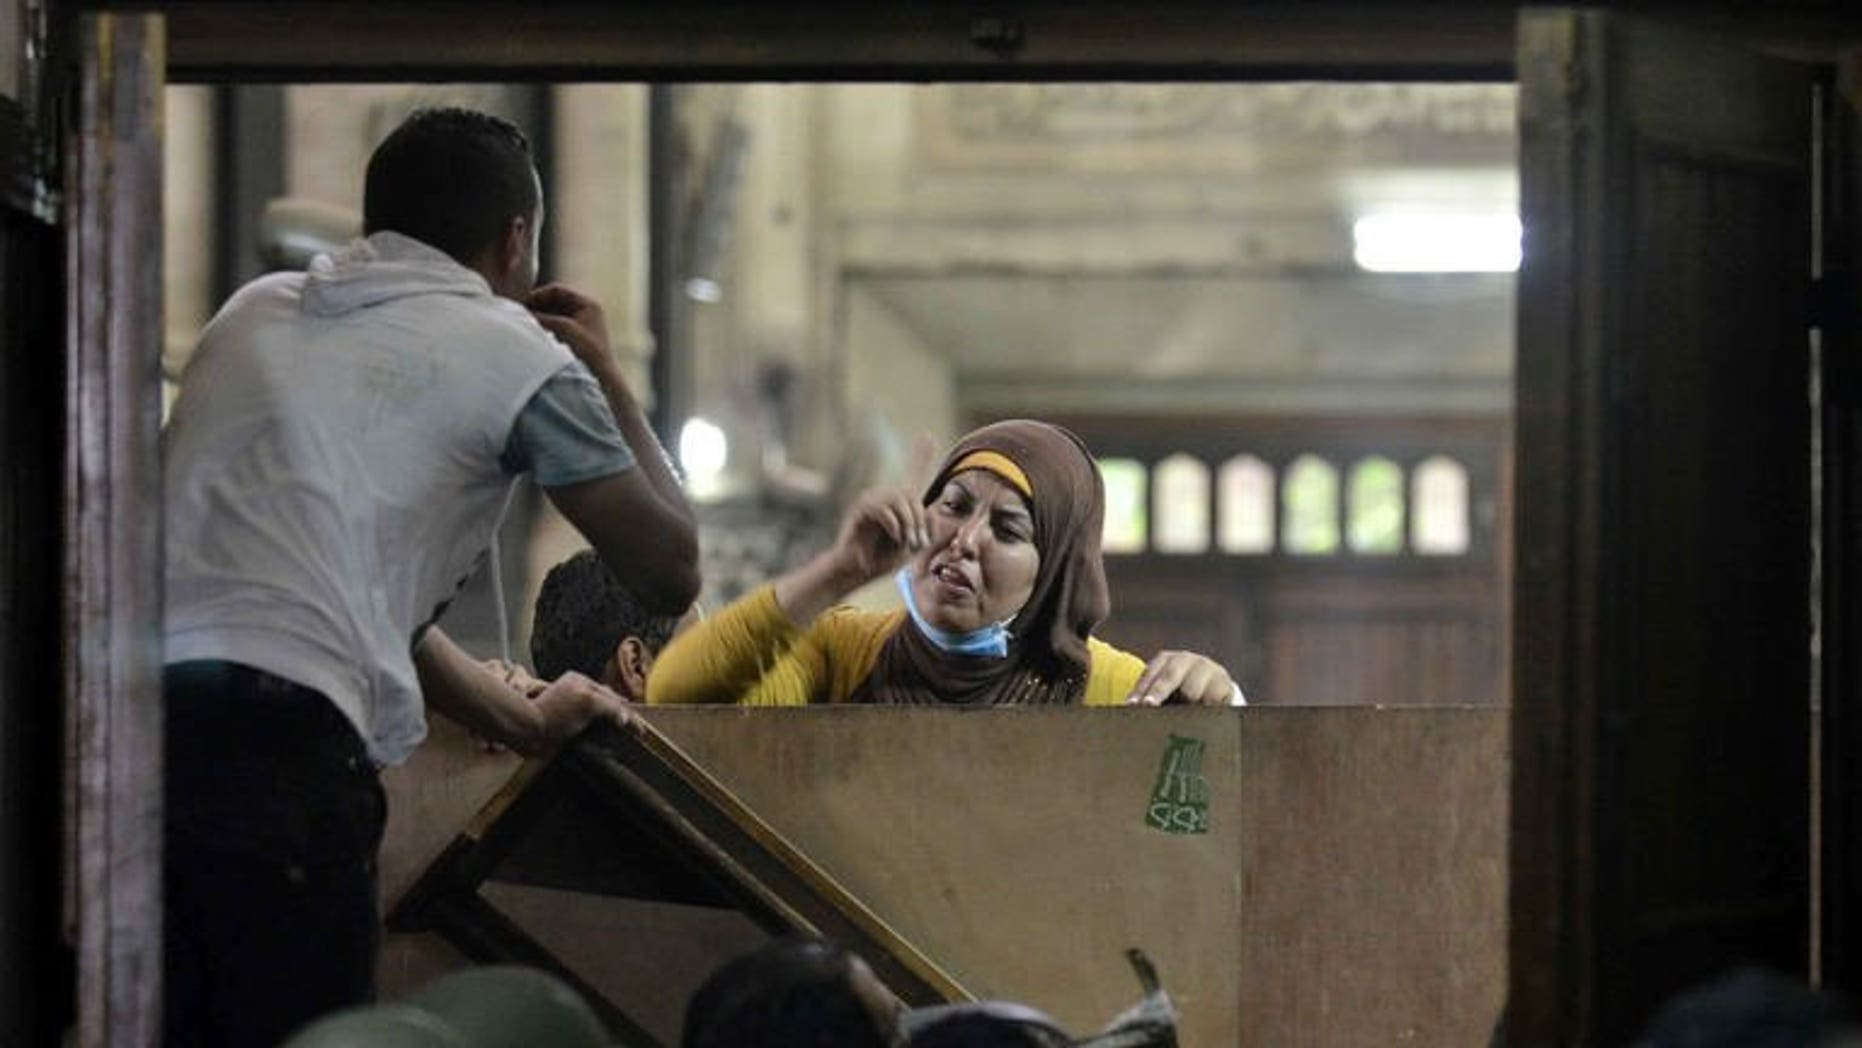 An Egyptian woman talks to policemen from the inside of Cairo's Al-Fath mosque where Islamist supporters of ousted president Mohamed Morsi hole up on August 17, 2013. Egyptian security forces cleared remaining Islamist protesters from a Cairo mosque on Saturday, after a stand-off and an exchange of fire, a security source told AFP.